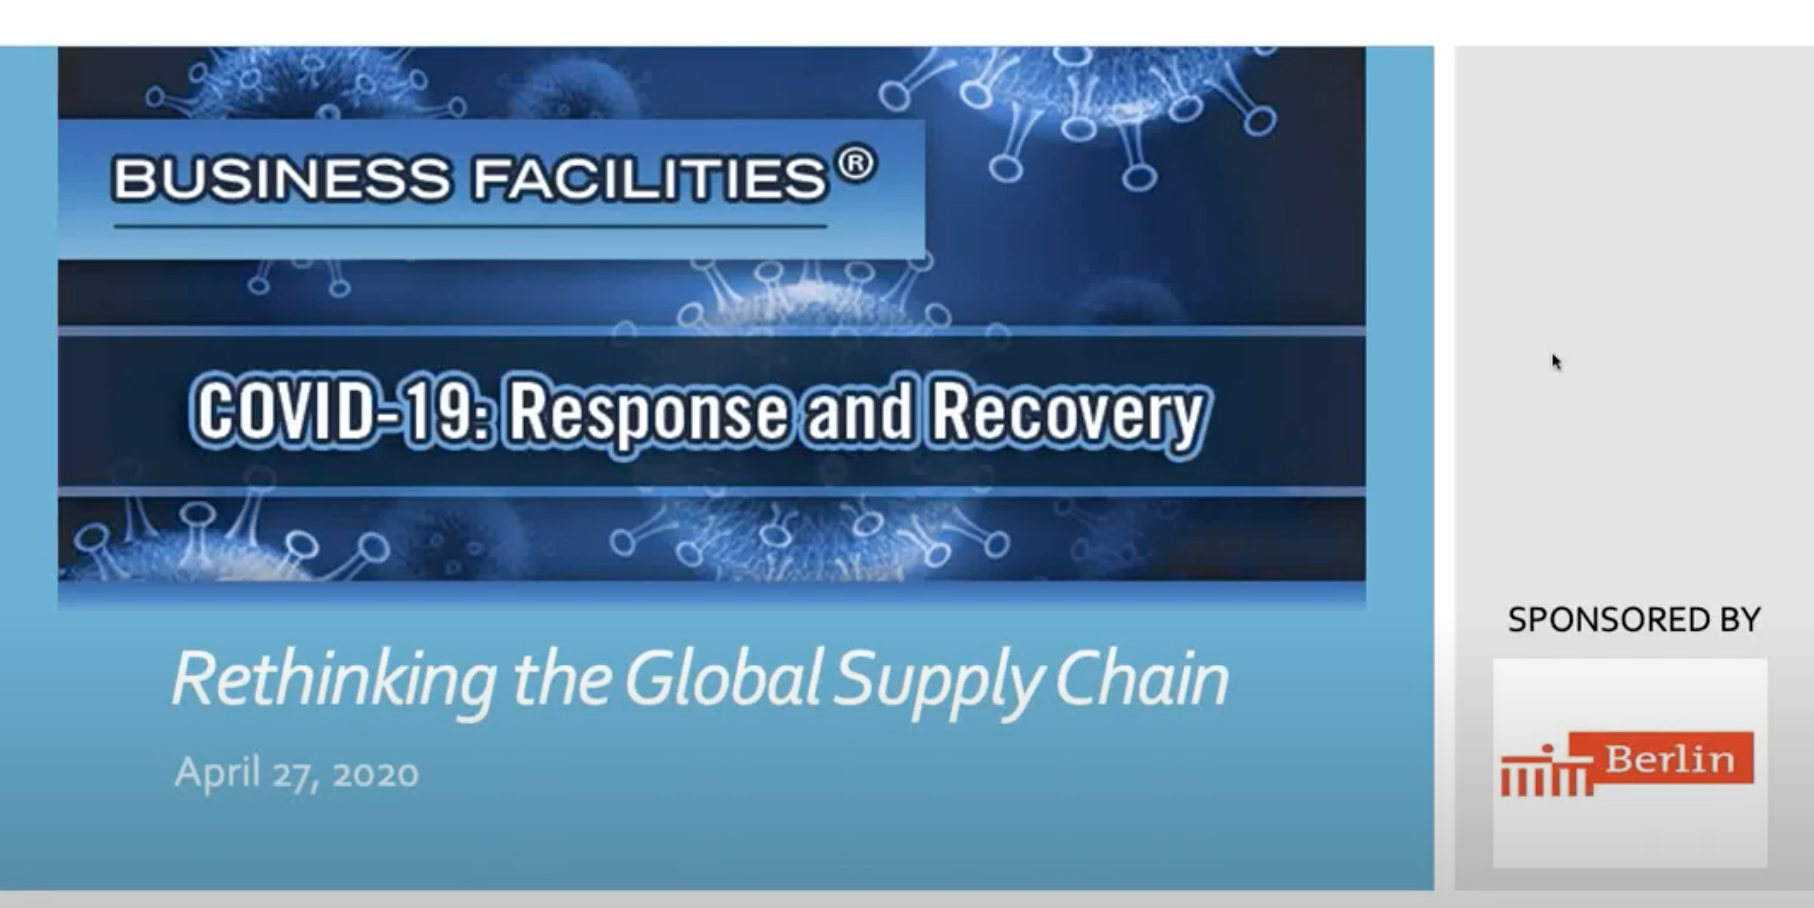 Business Facilities Webinar: Rethinking the Global Supply Chain